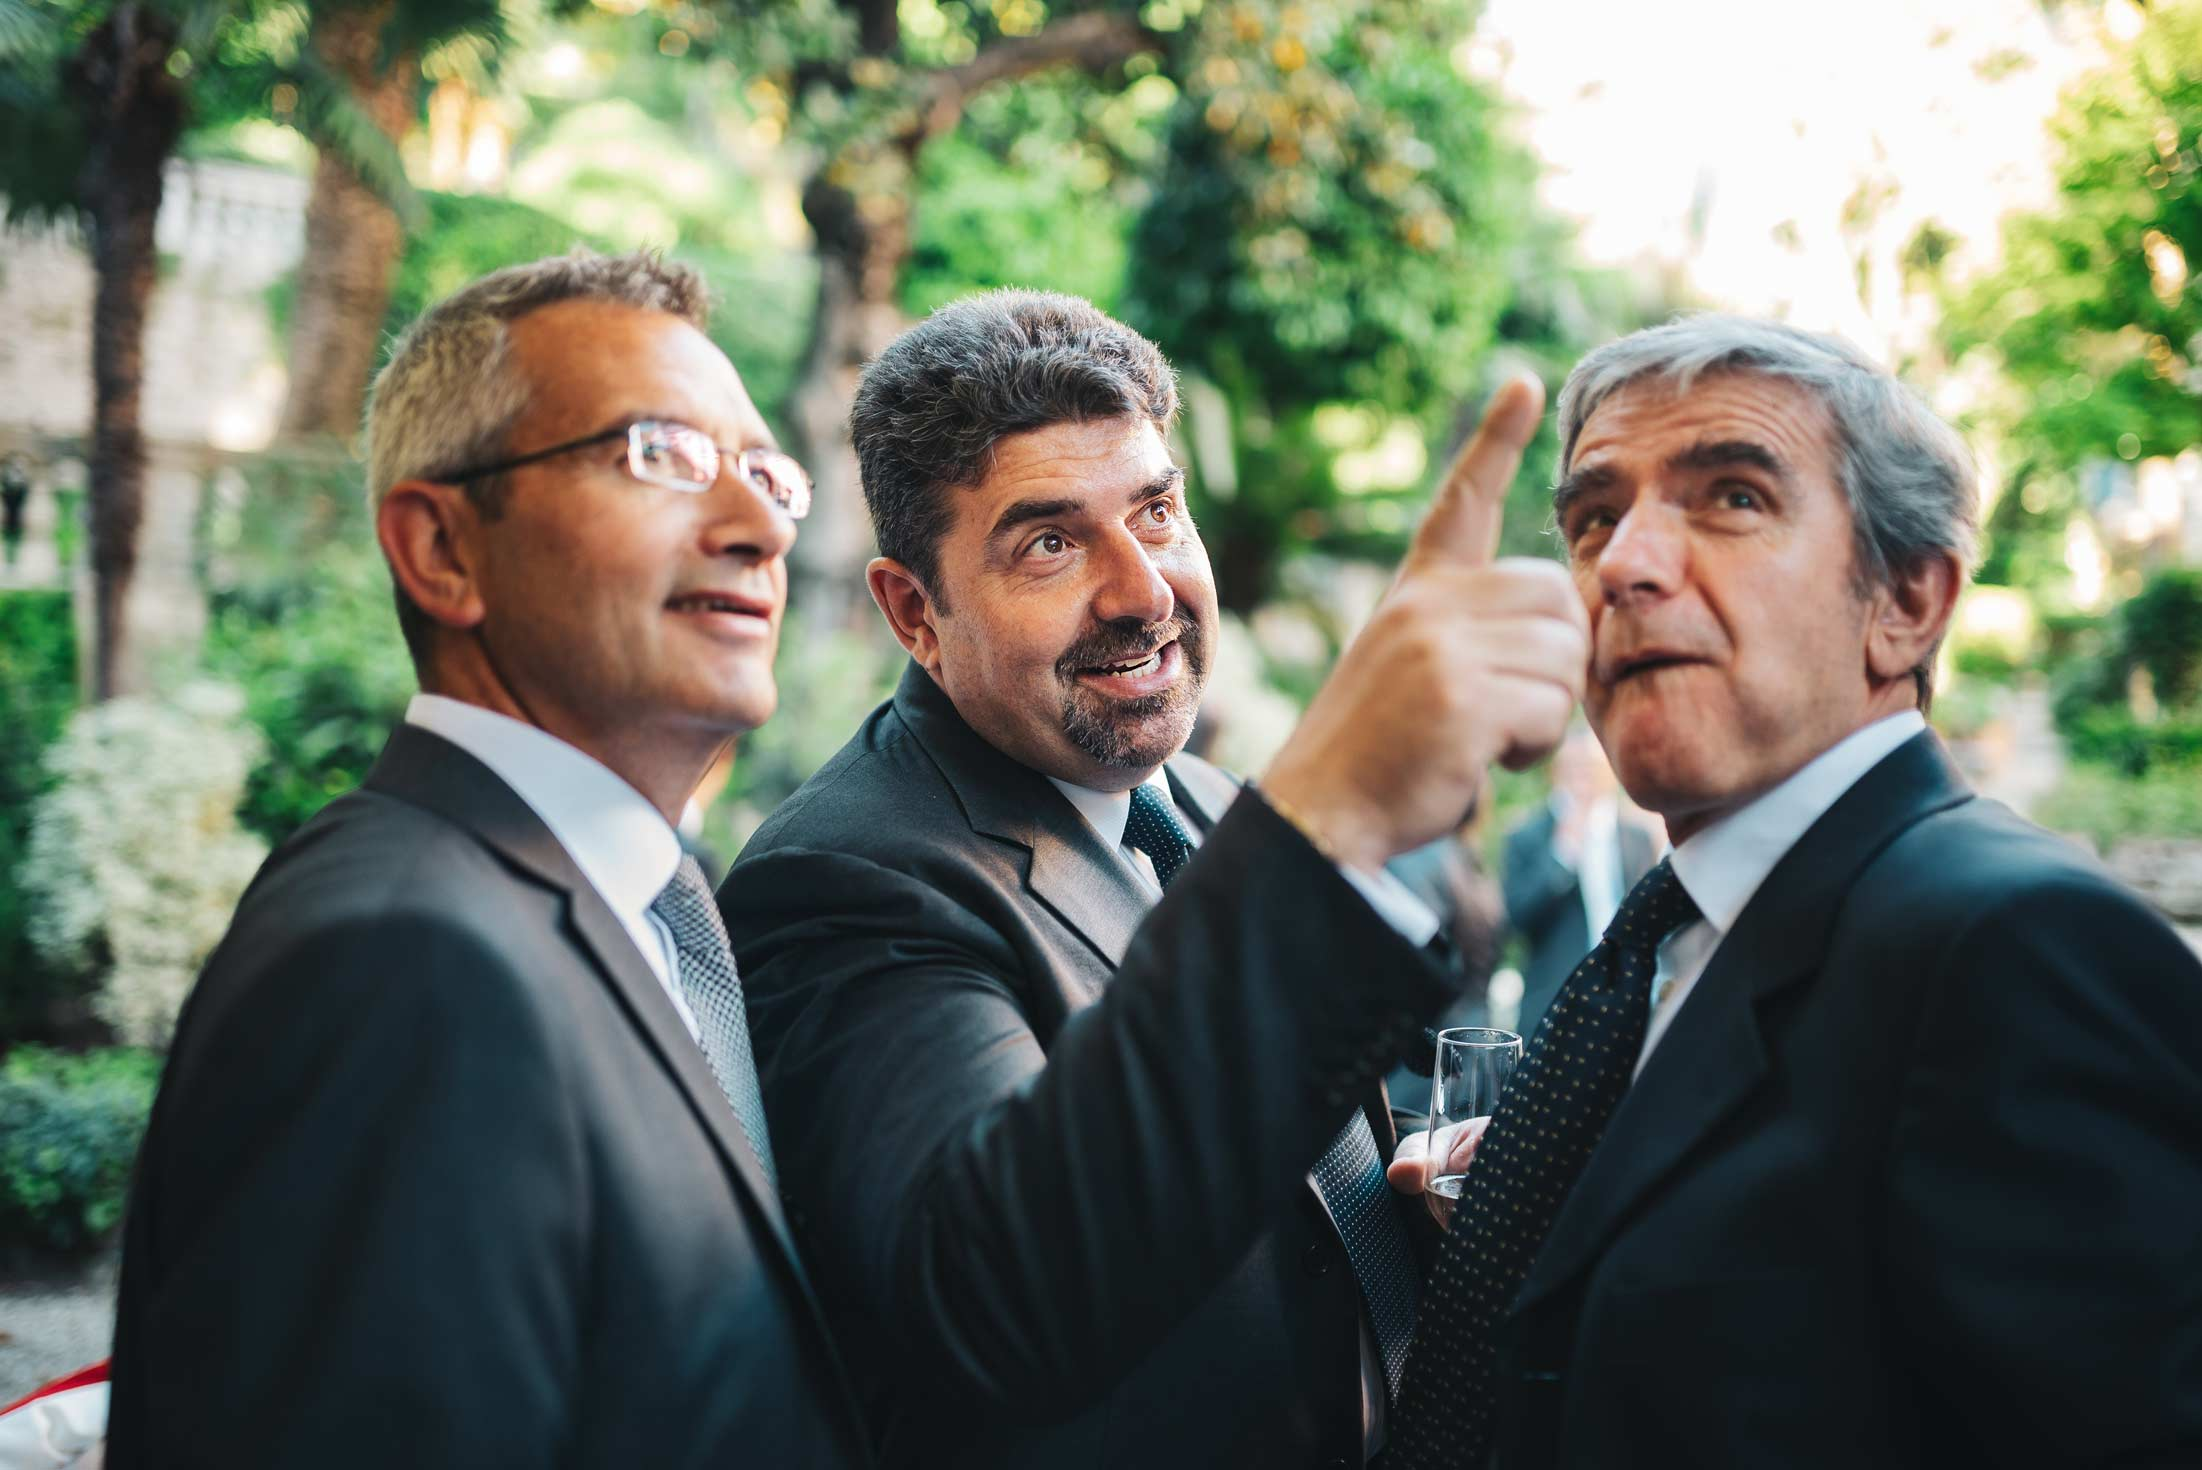 Reportage-Wedding-Photography-in-Rome-Reception